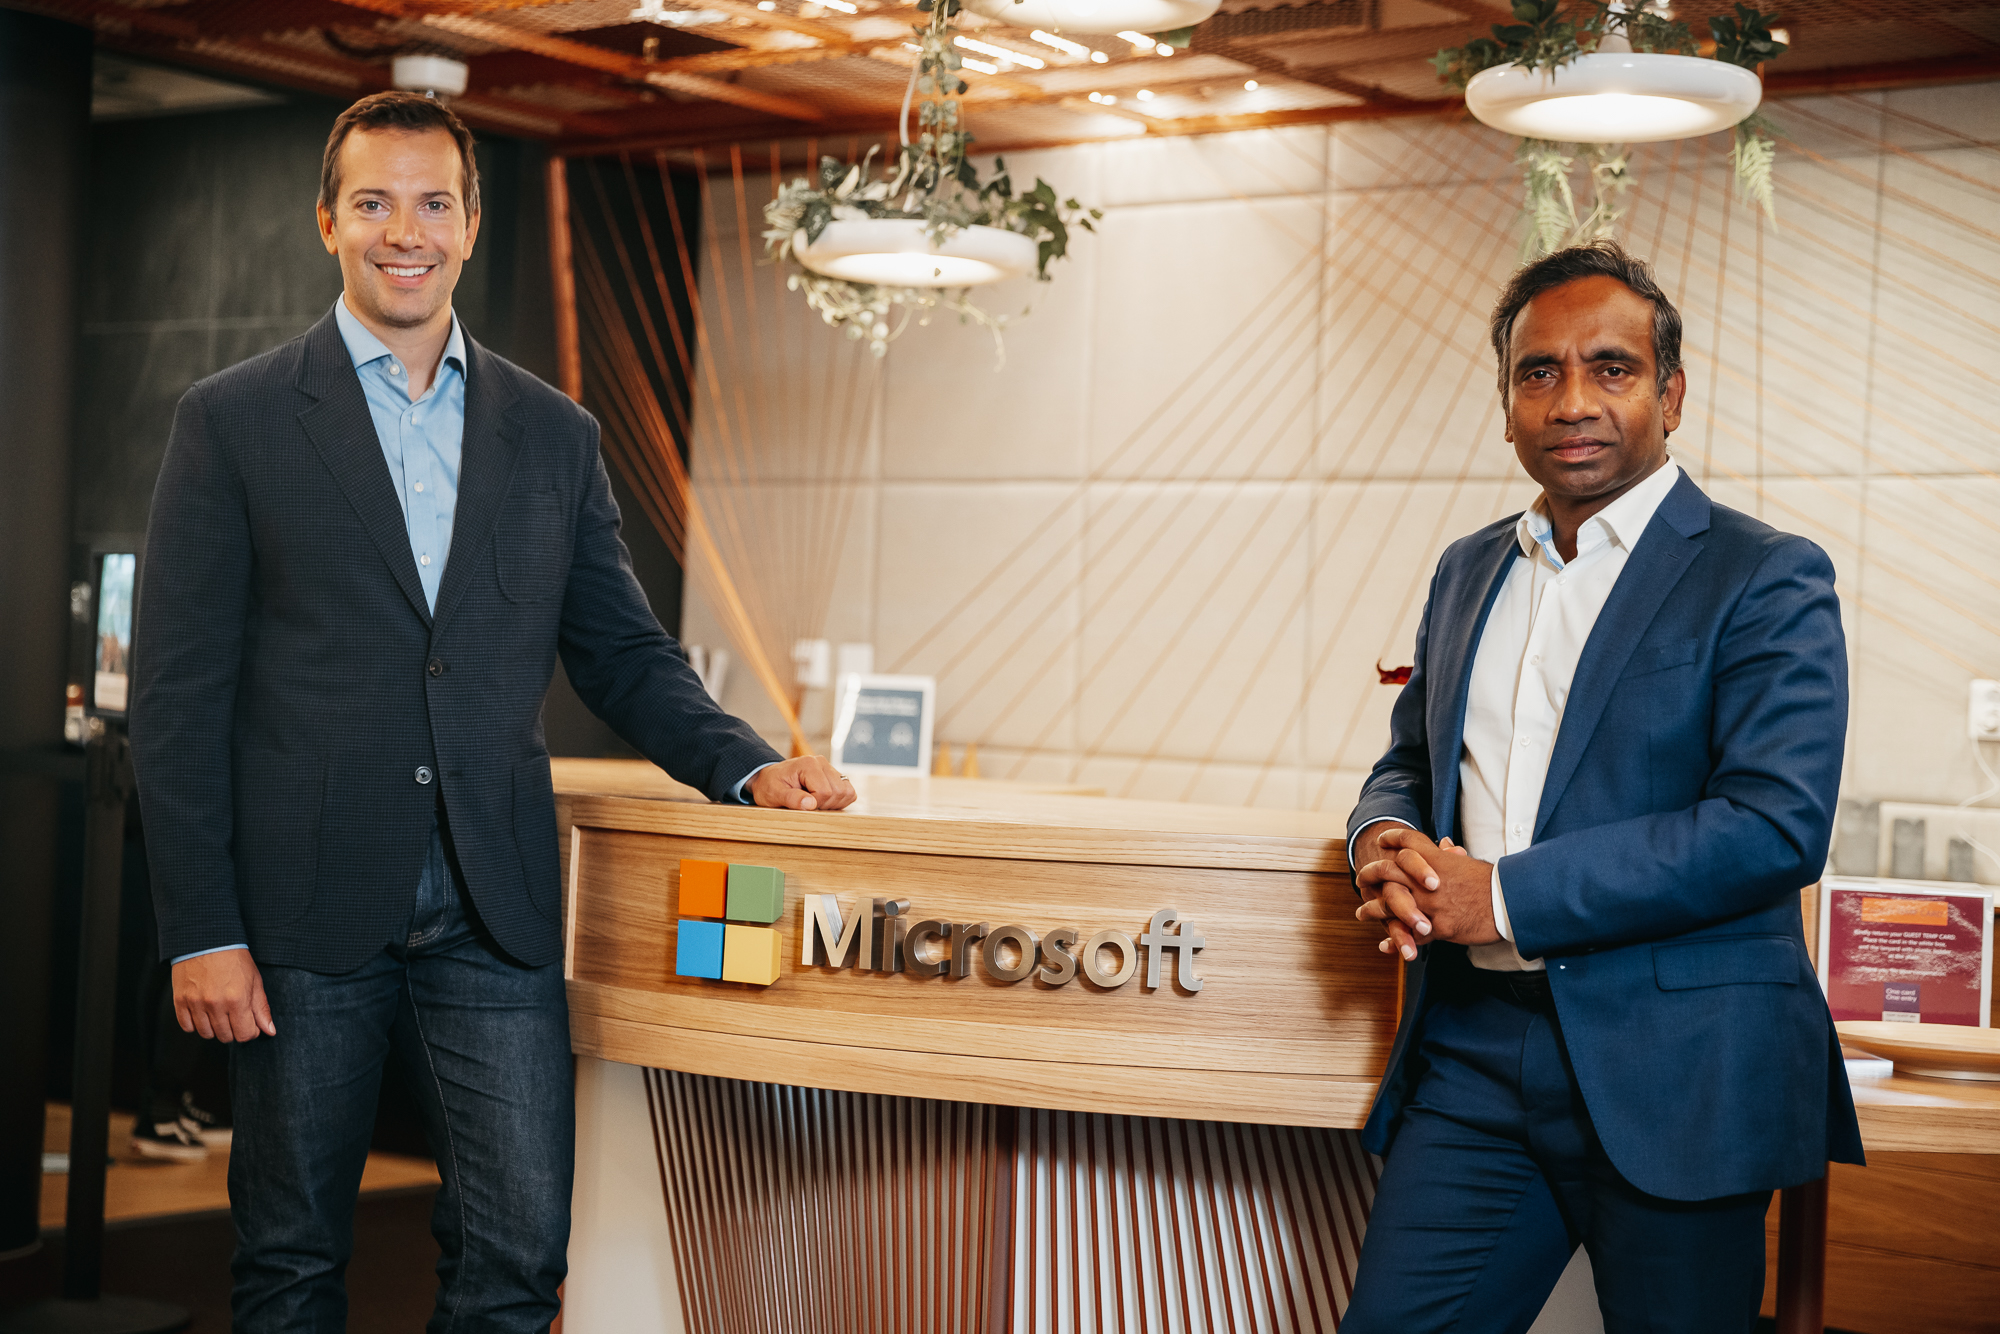 Nadarajah and Reime is smiling to the camera in front of the recepetion desk at Microsoft's office.